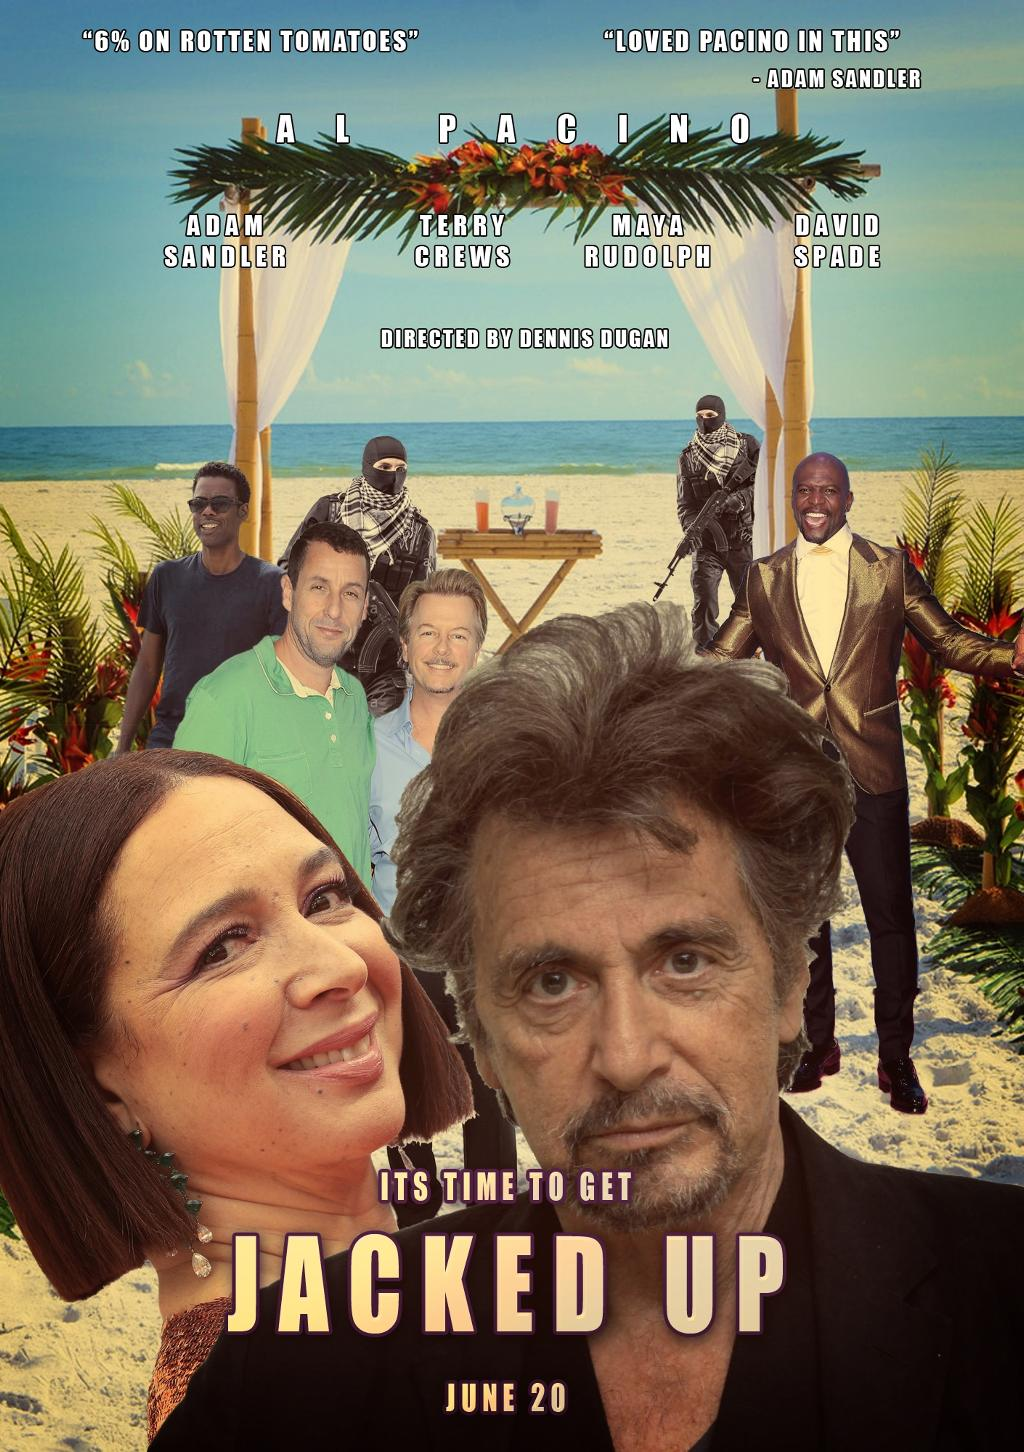 Costa Rica Setting For Fake Adam Sandler Movie Taking The Internet By Storm Q Costa Rica